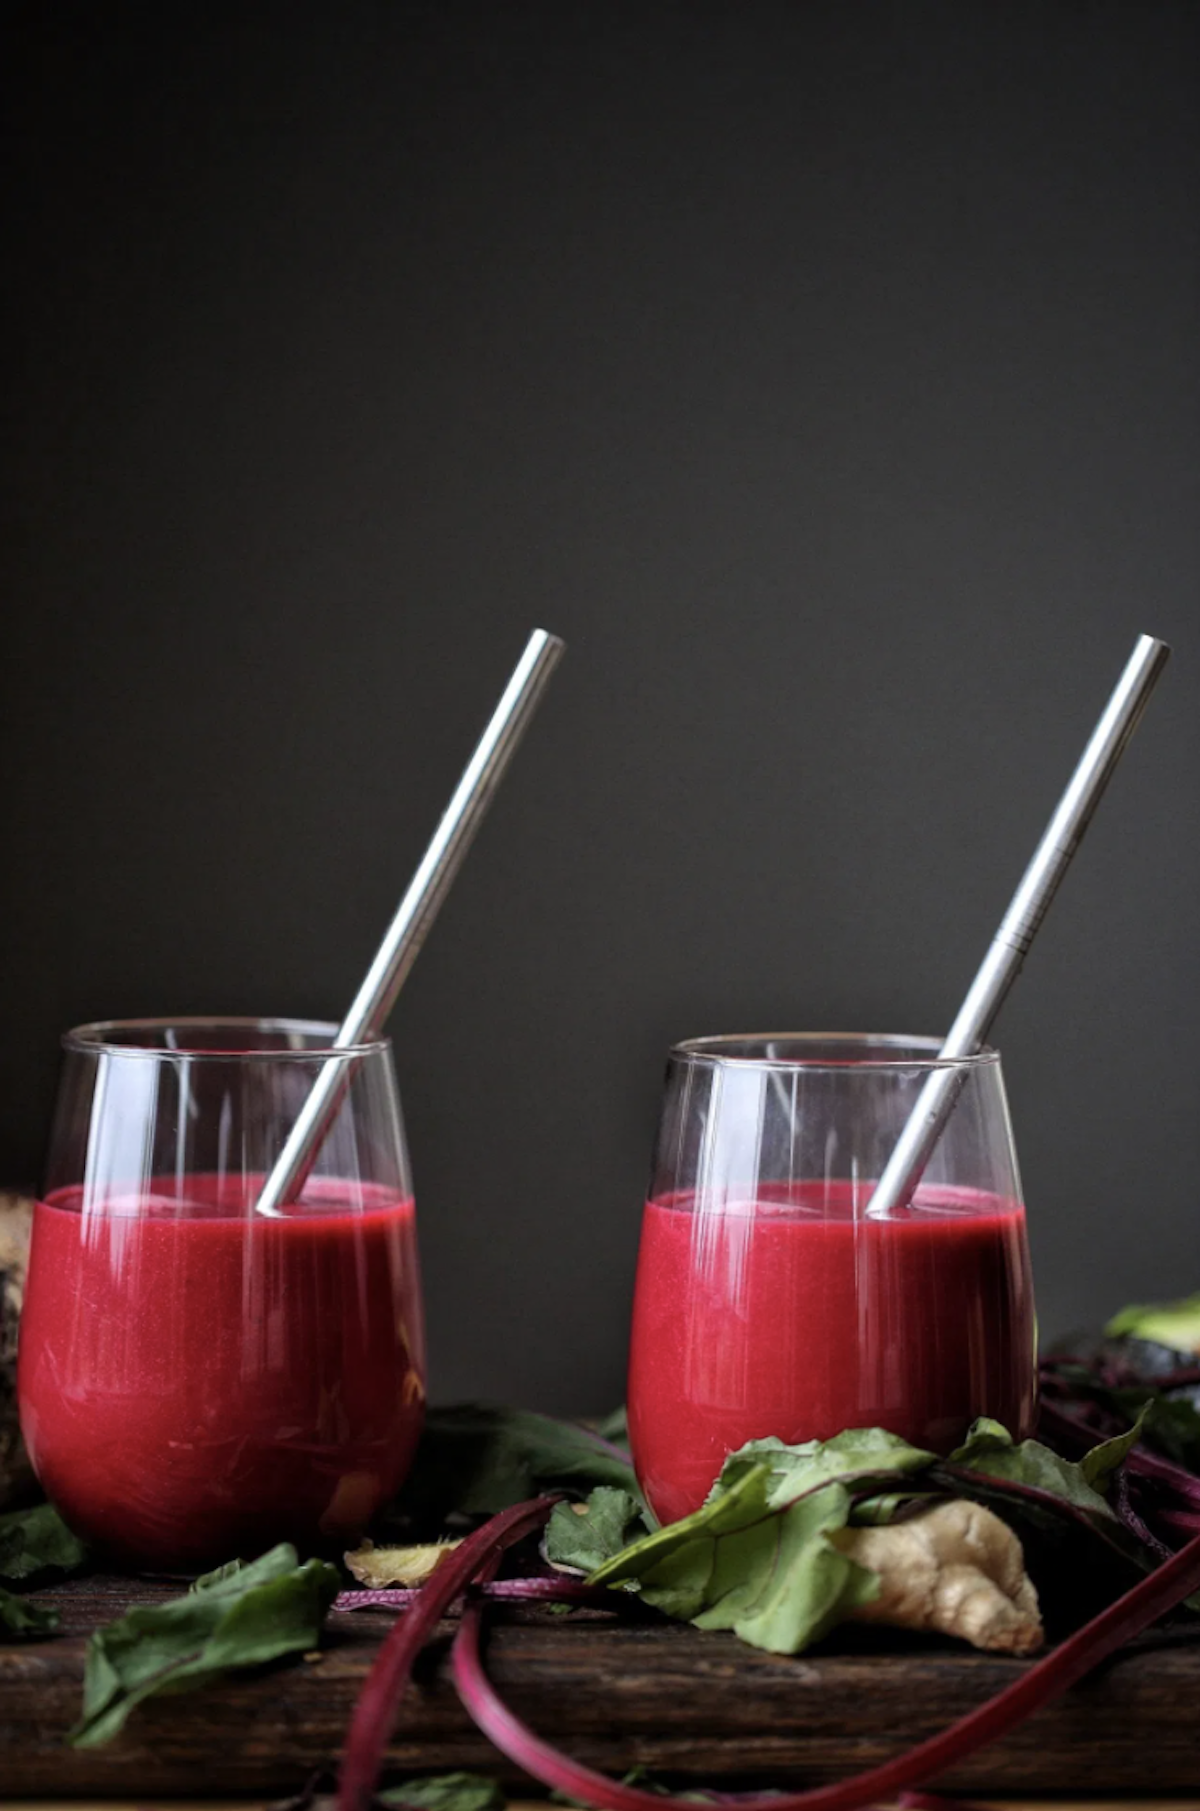 two glasses filled with healthy smoothie recipes made of beets and ginger with stainless steel straw sticking out of both glasses